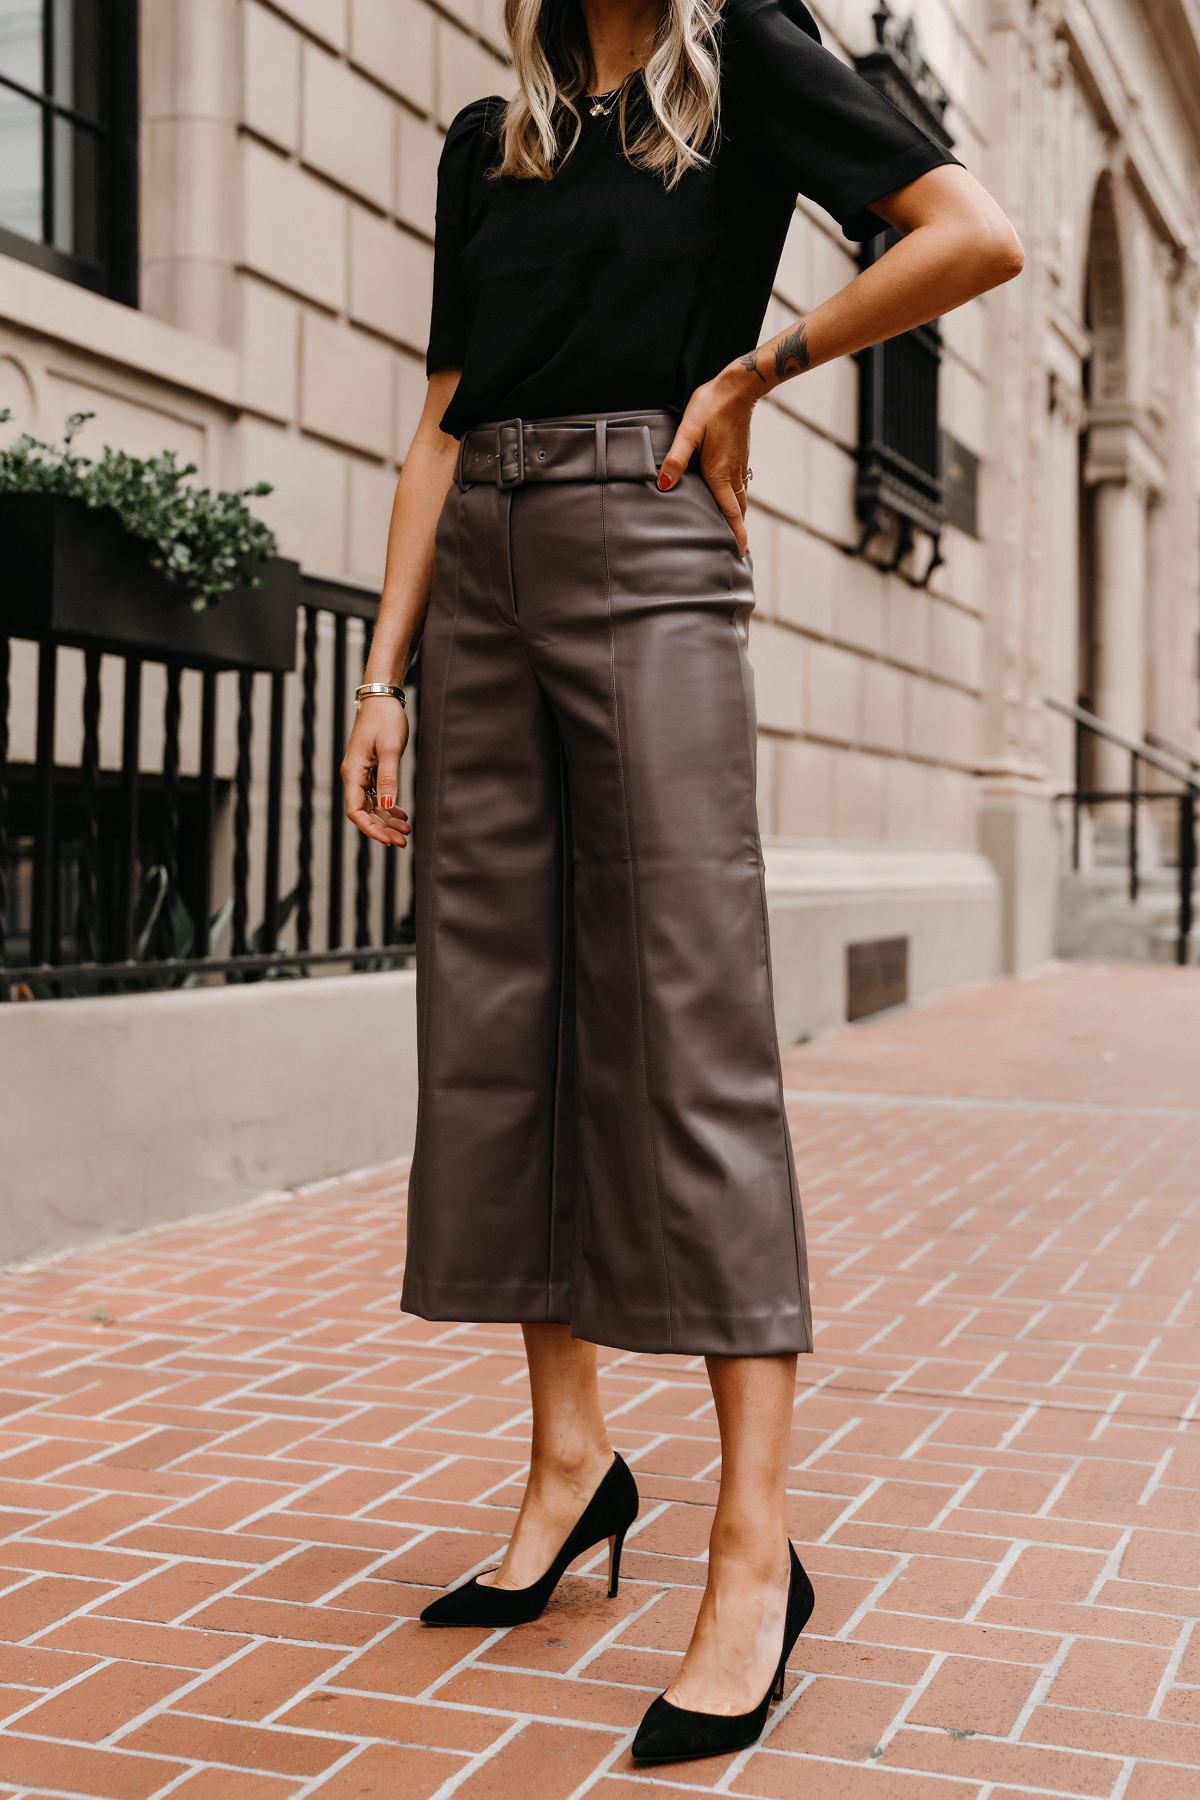 Fashion Jackson Wearing Ann Taylor Workwear Outfit Black Puff Sleeve Blouse Leather Pants Black Pumps Womens Workwear Attire 1